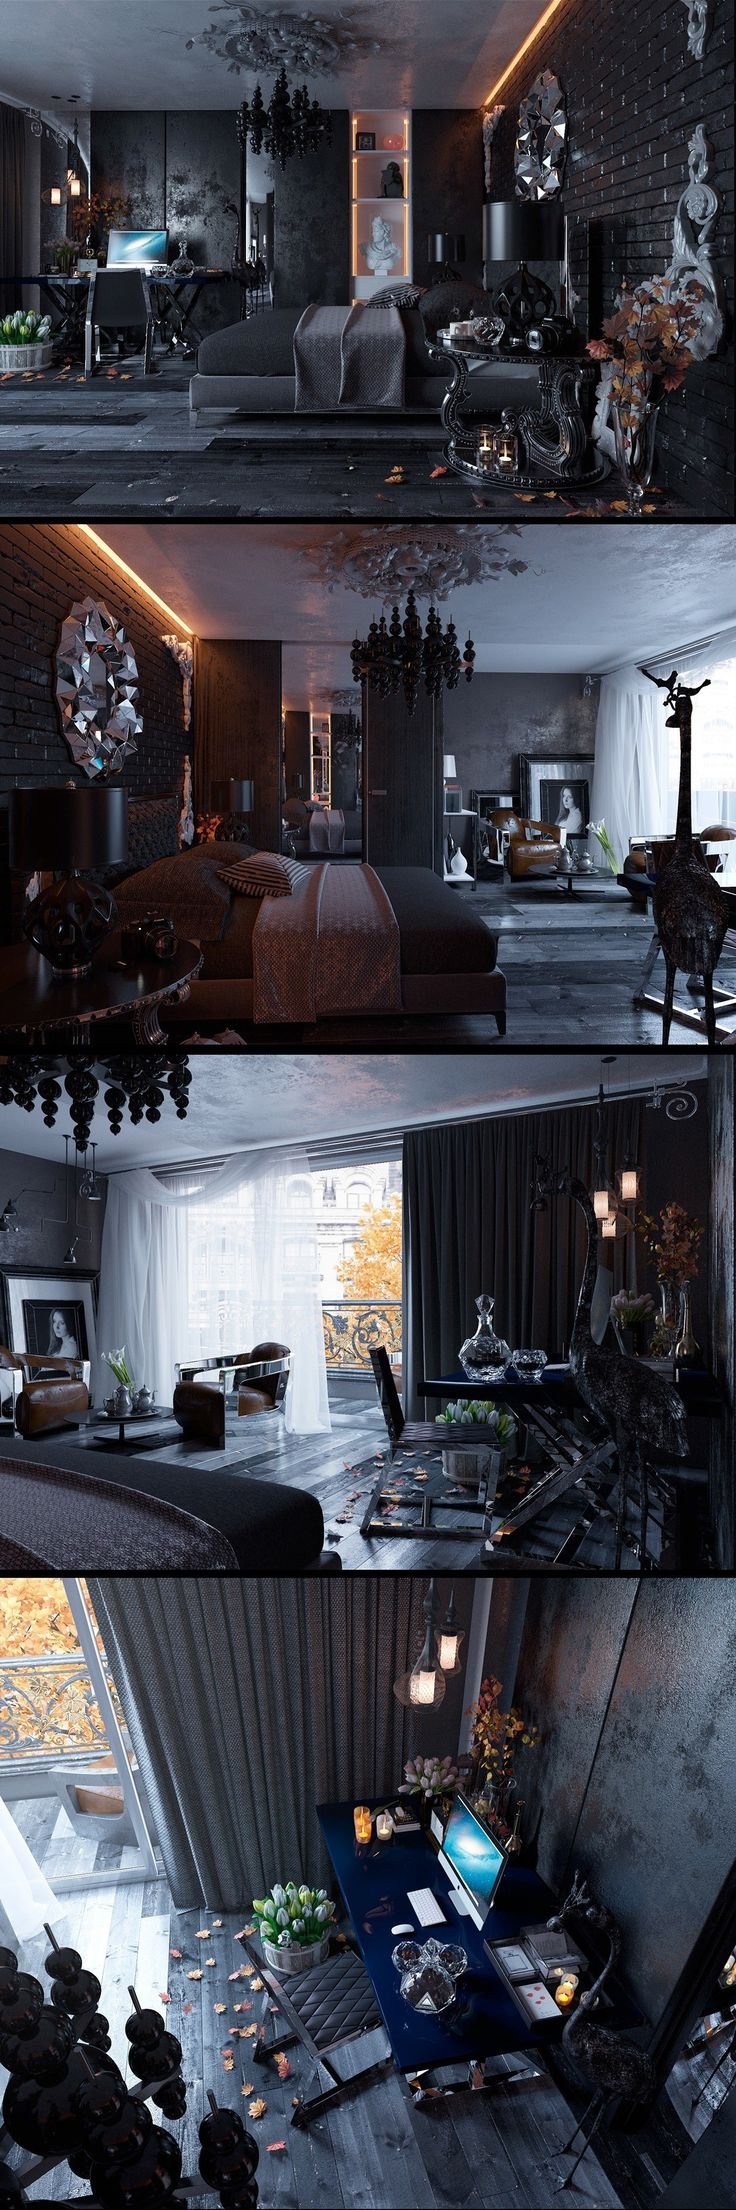 I love how white sheers are used in an otherwise dark and moody room. | Marvelous dark bedroom design.